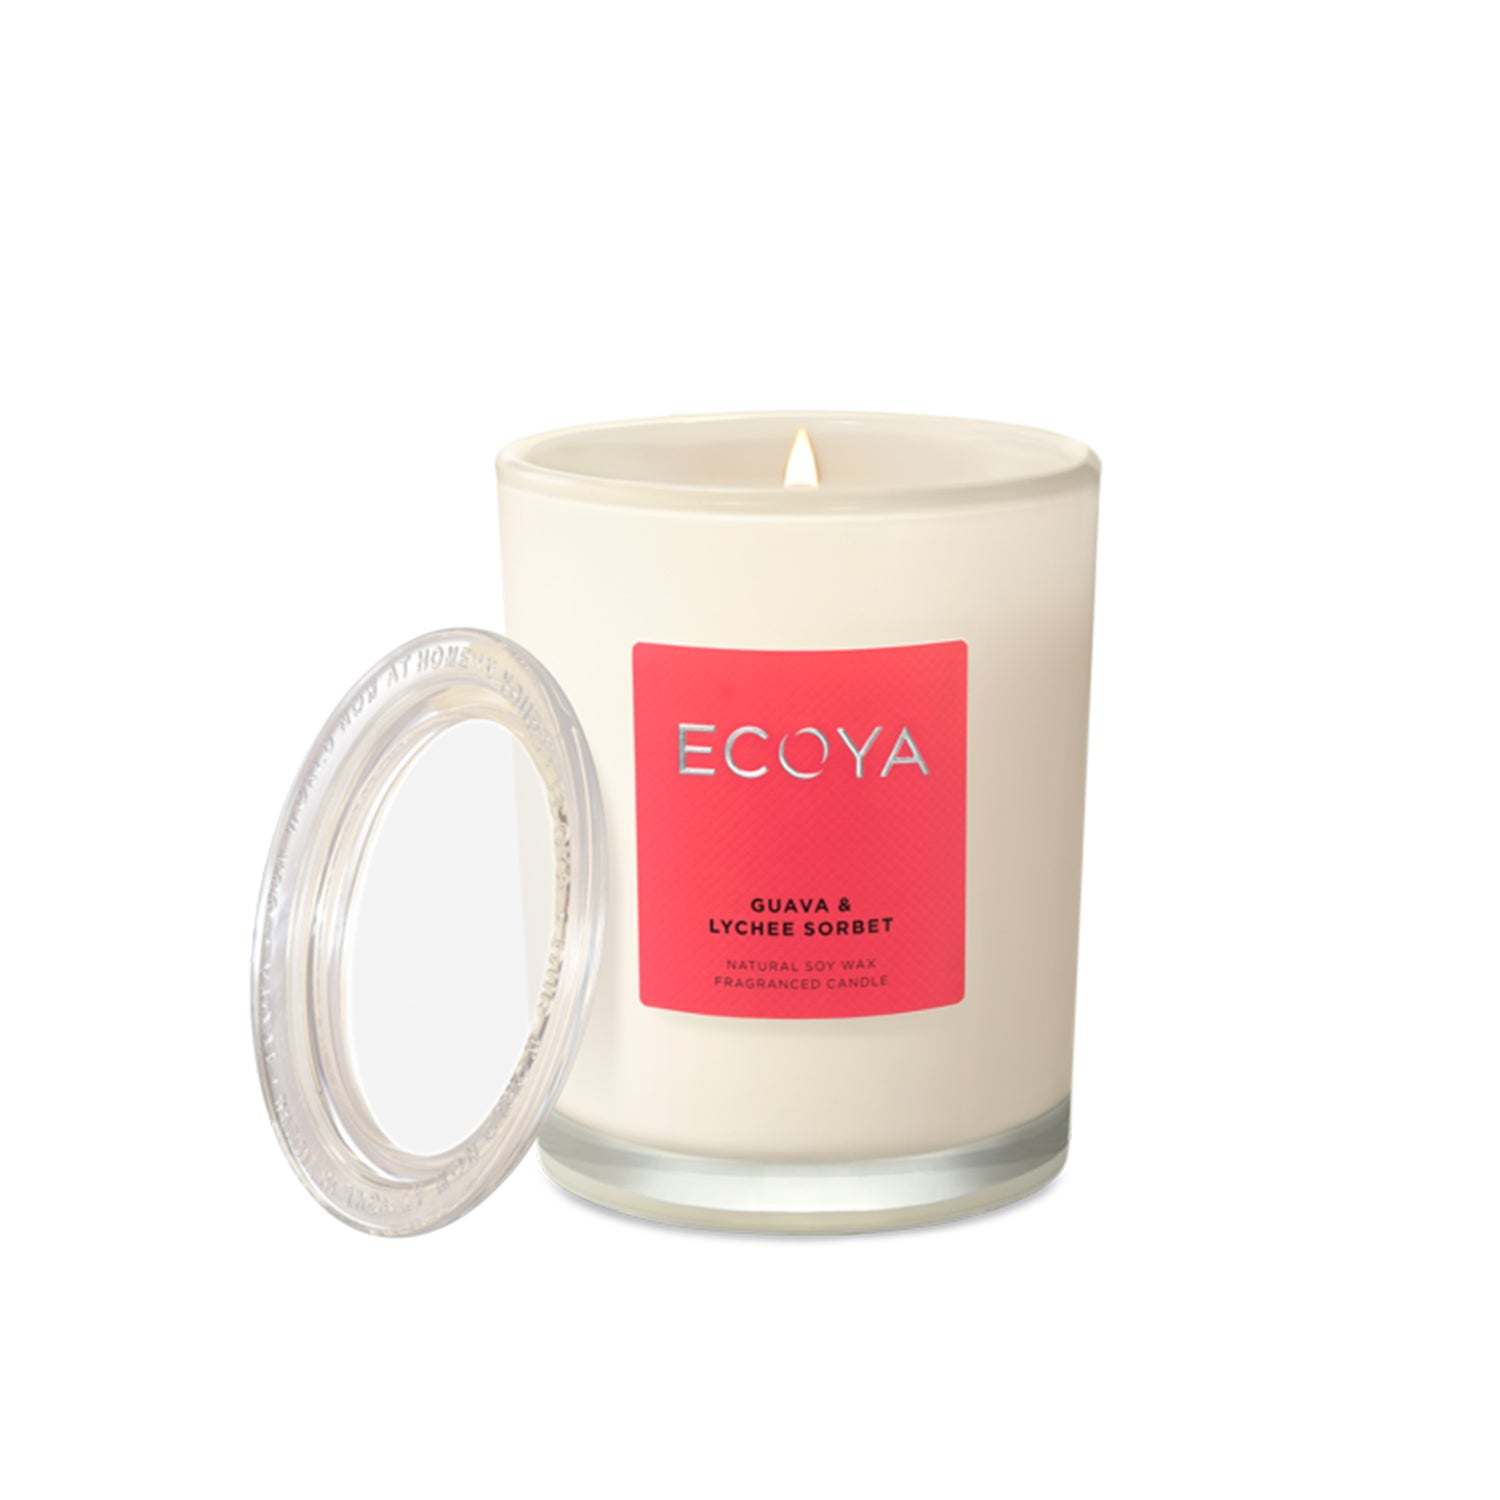 Guava & Lychee Sorbet Metro Jar Candle